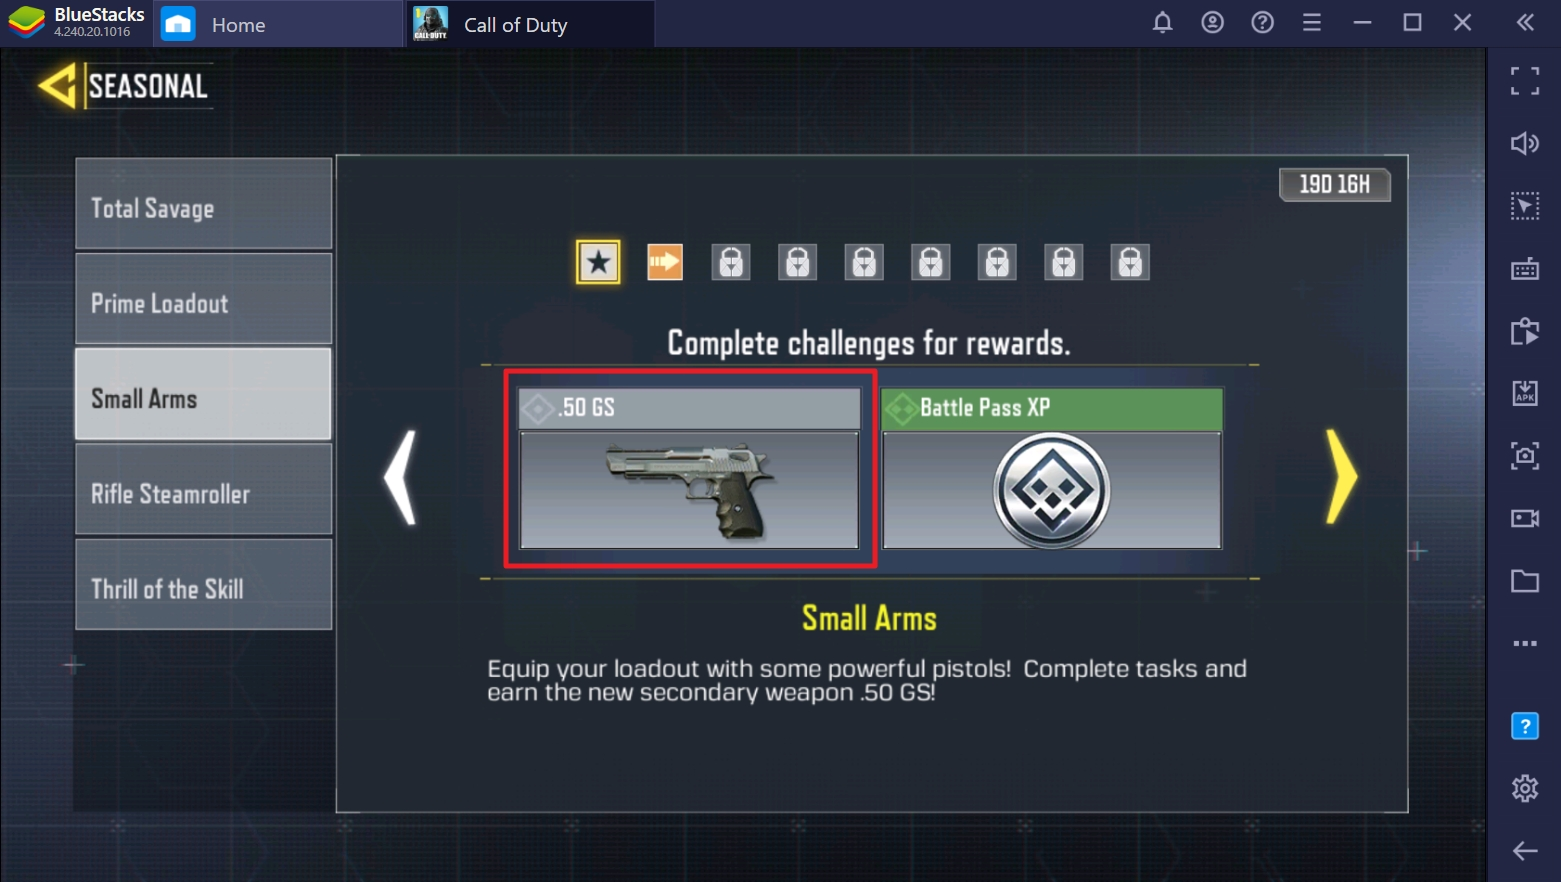 Call of Duty: Mobile – New Weapon: How to Unlock the .50 GS Pistol